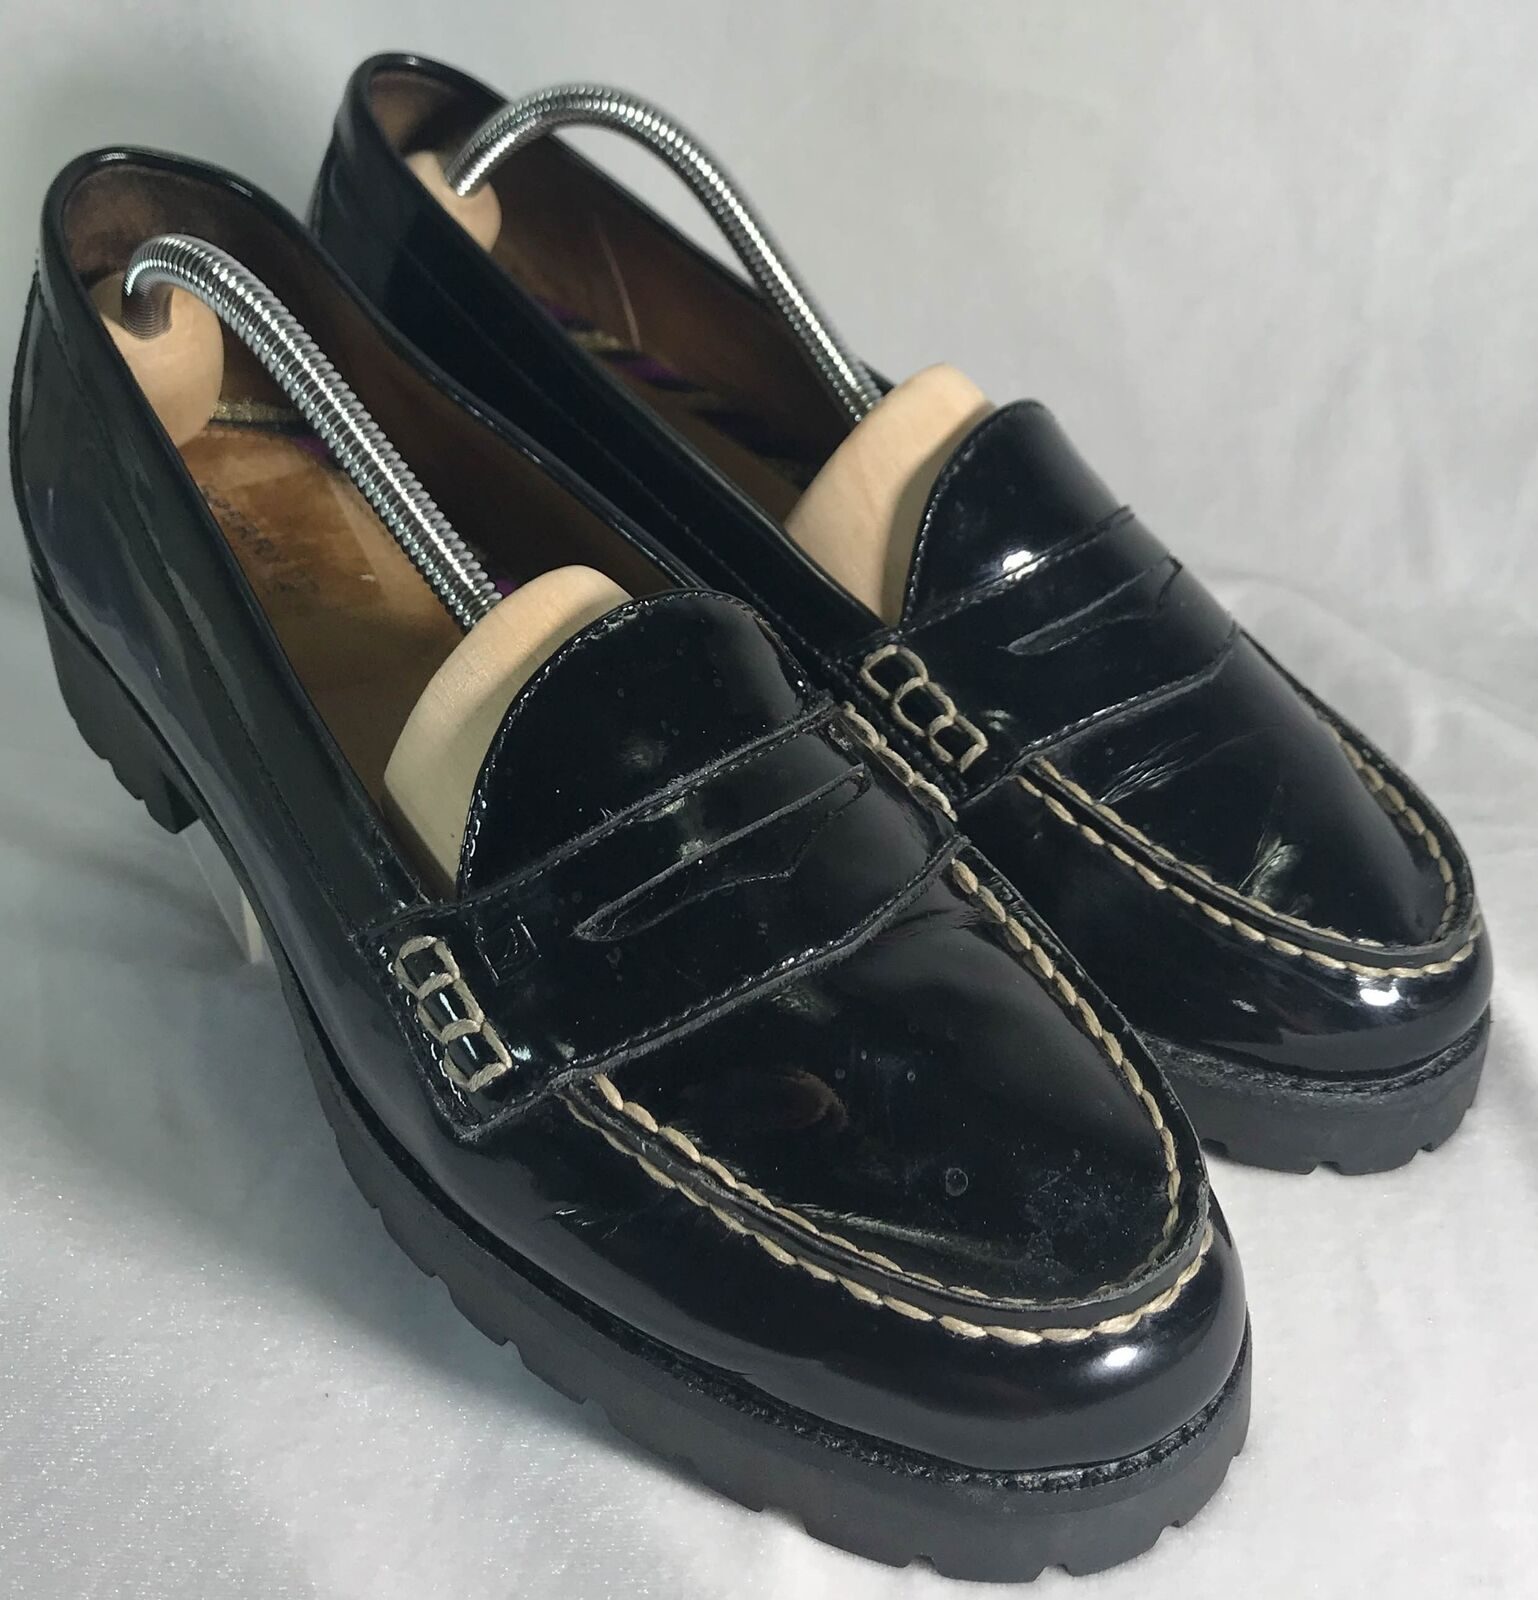 Sperry Top-sider 9.5 Black Leather Patent Upper Rubber Sole Sole Sole Windsor Penny Loafer d638c8